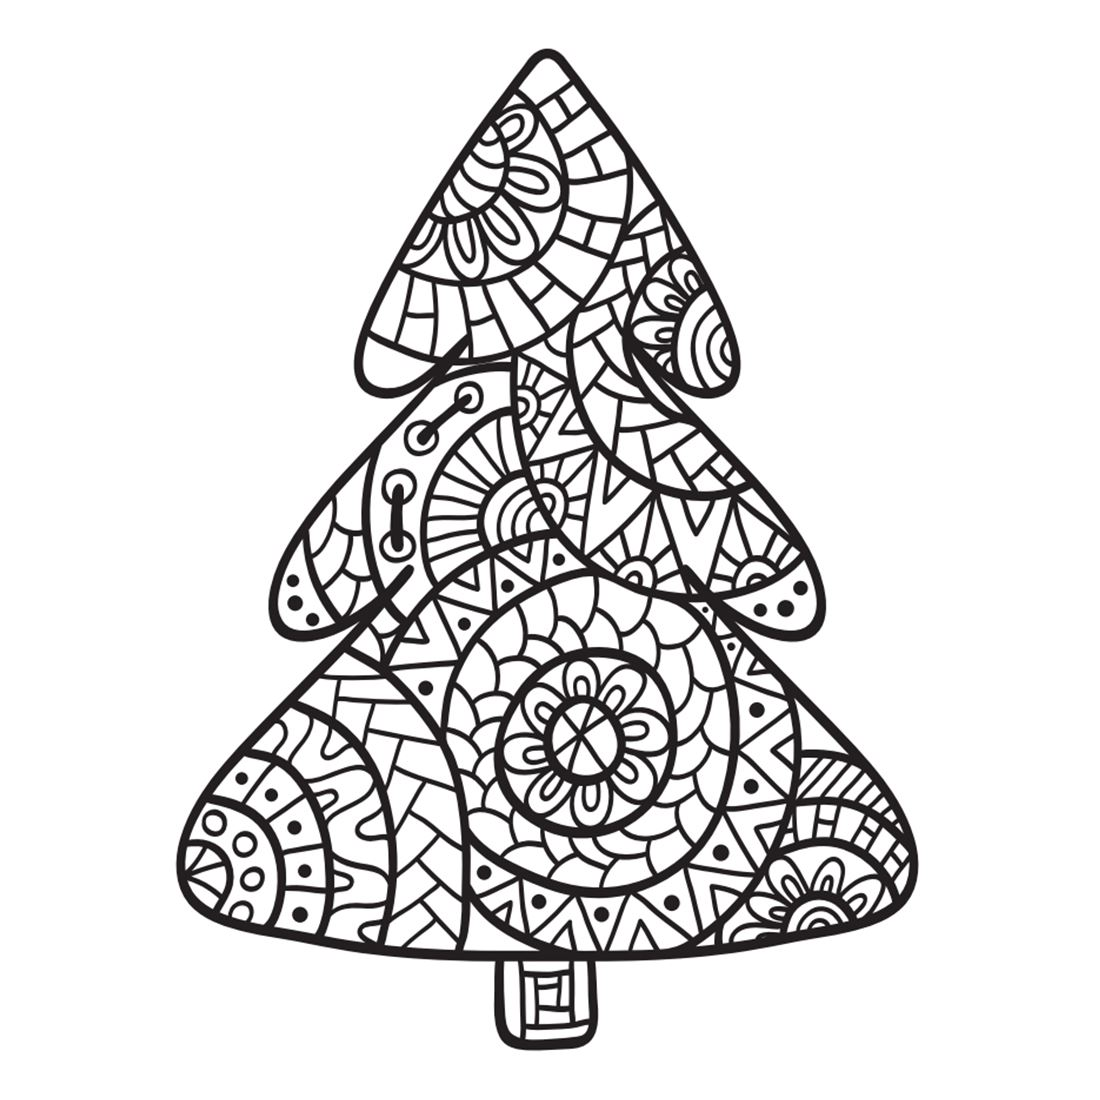 Coloring book drawing of a tree